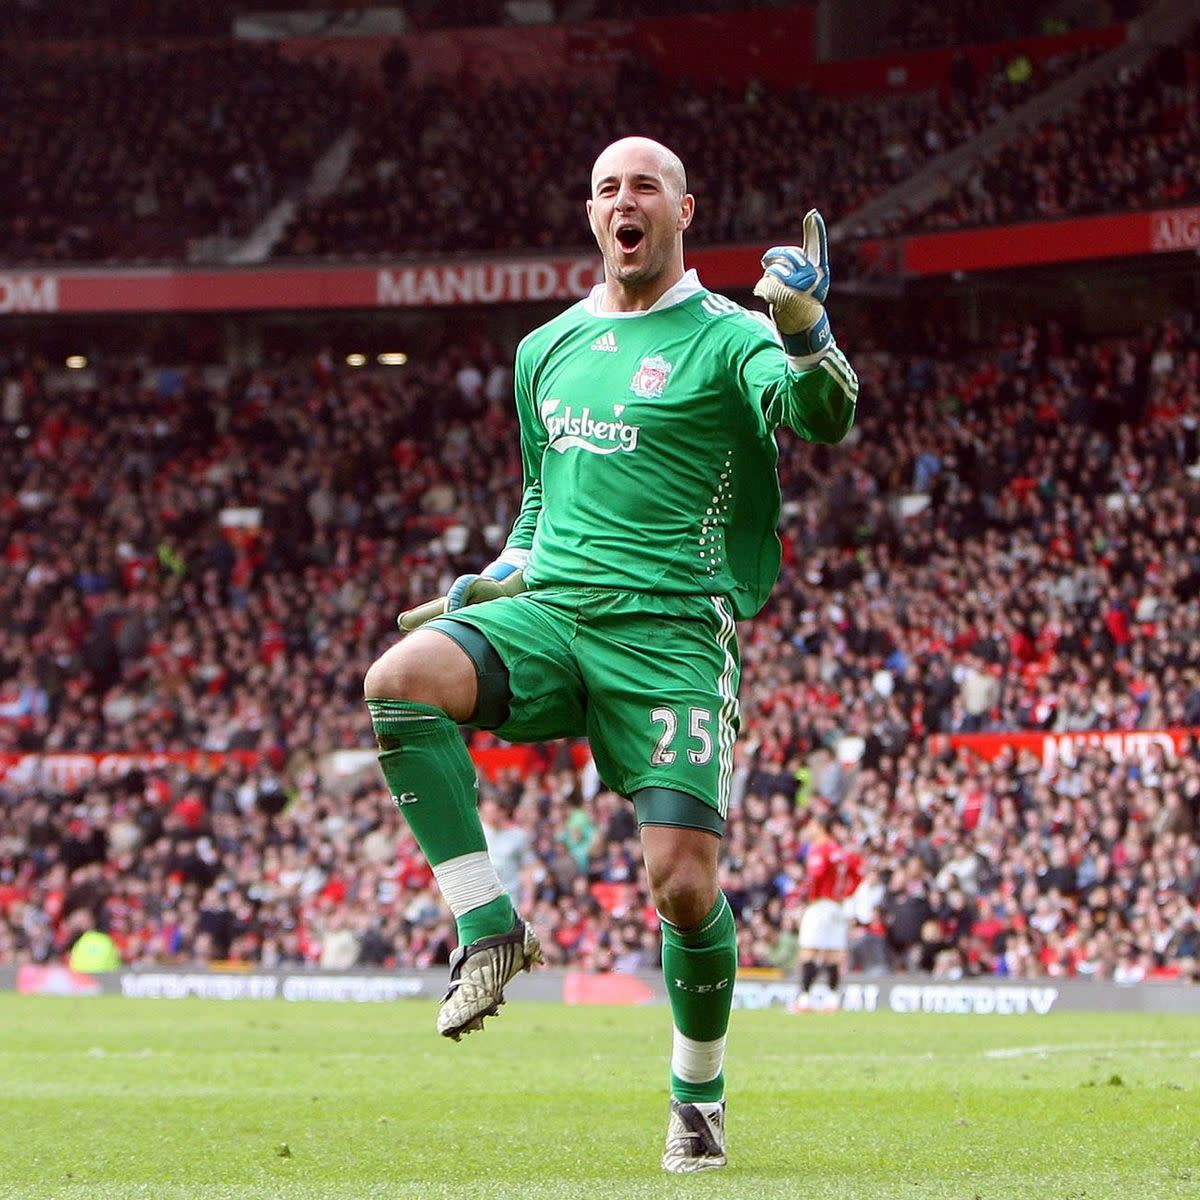 Pepe Reina celebrating Liverpool FC's fourth goal against Manchester United in 2009.